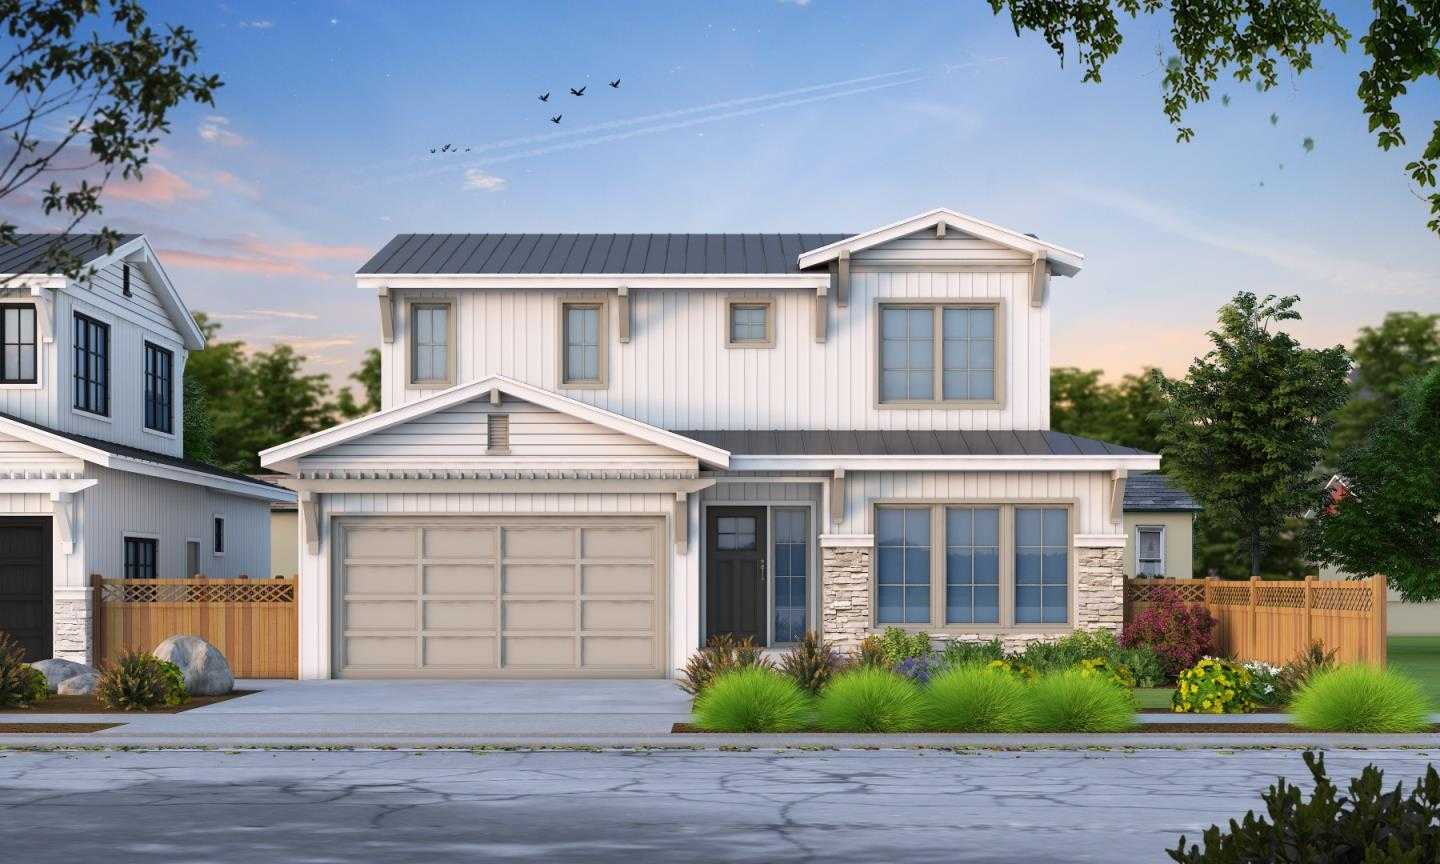 $1,899,888 - 4Br/3Ba -  for Sale in Sunnyvale